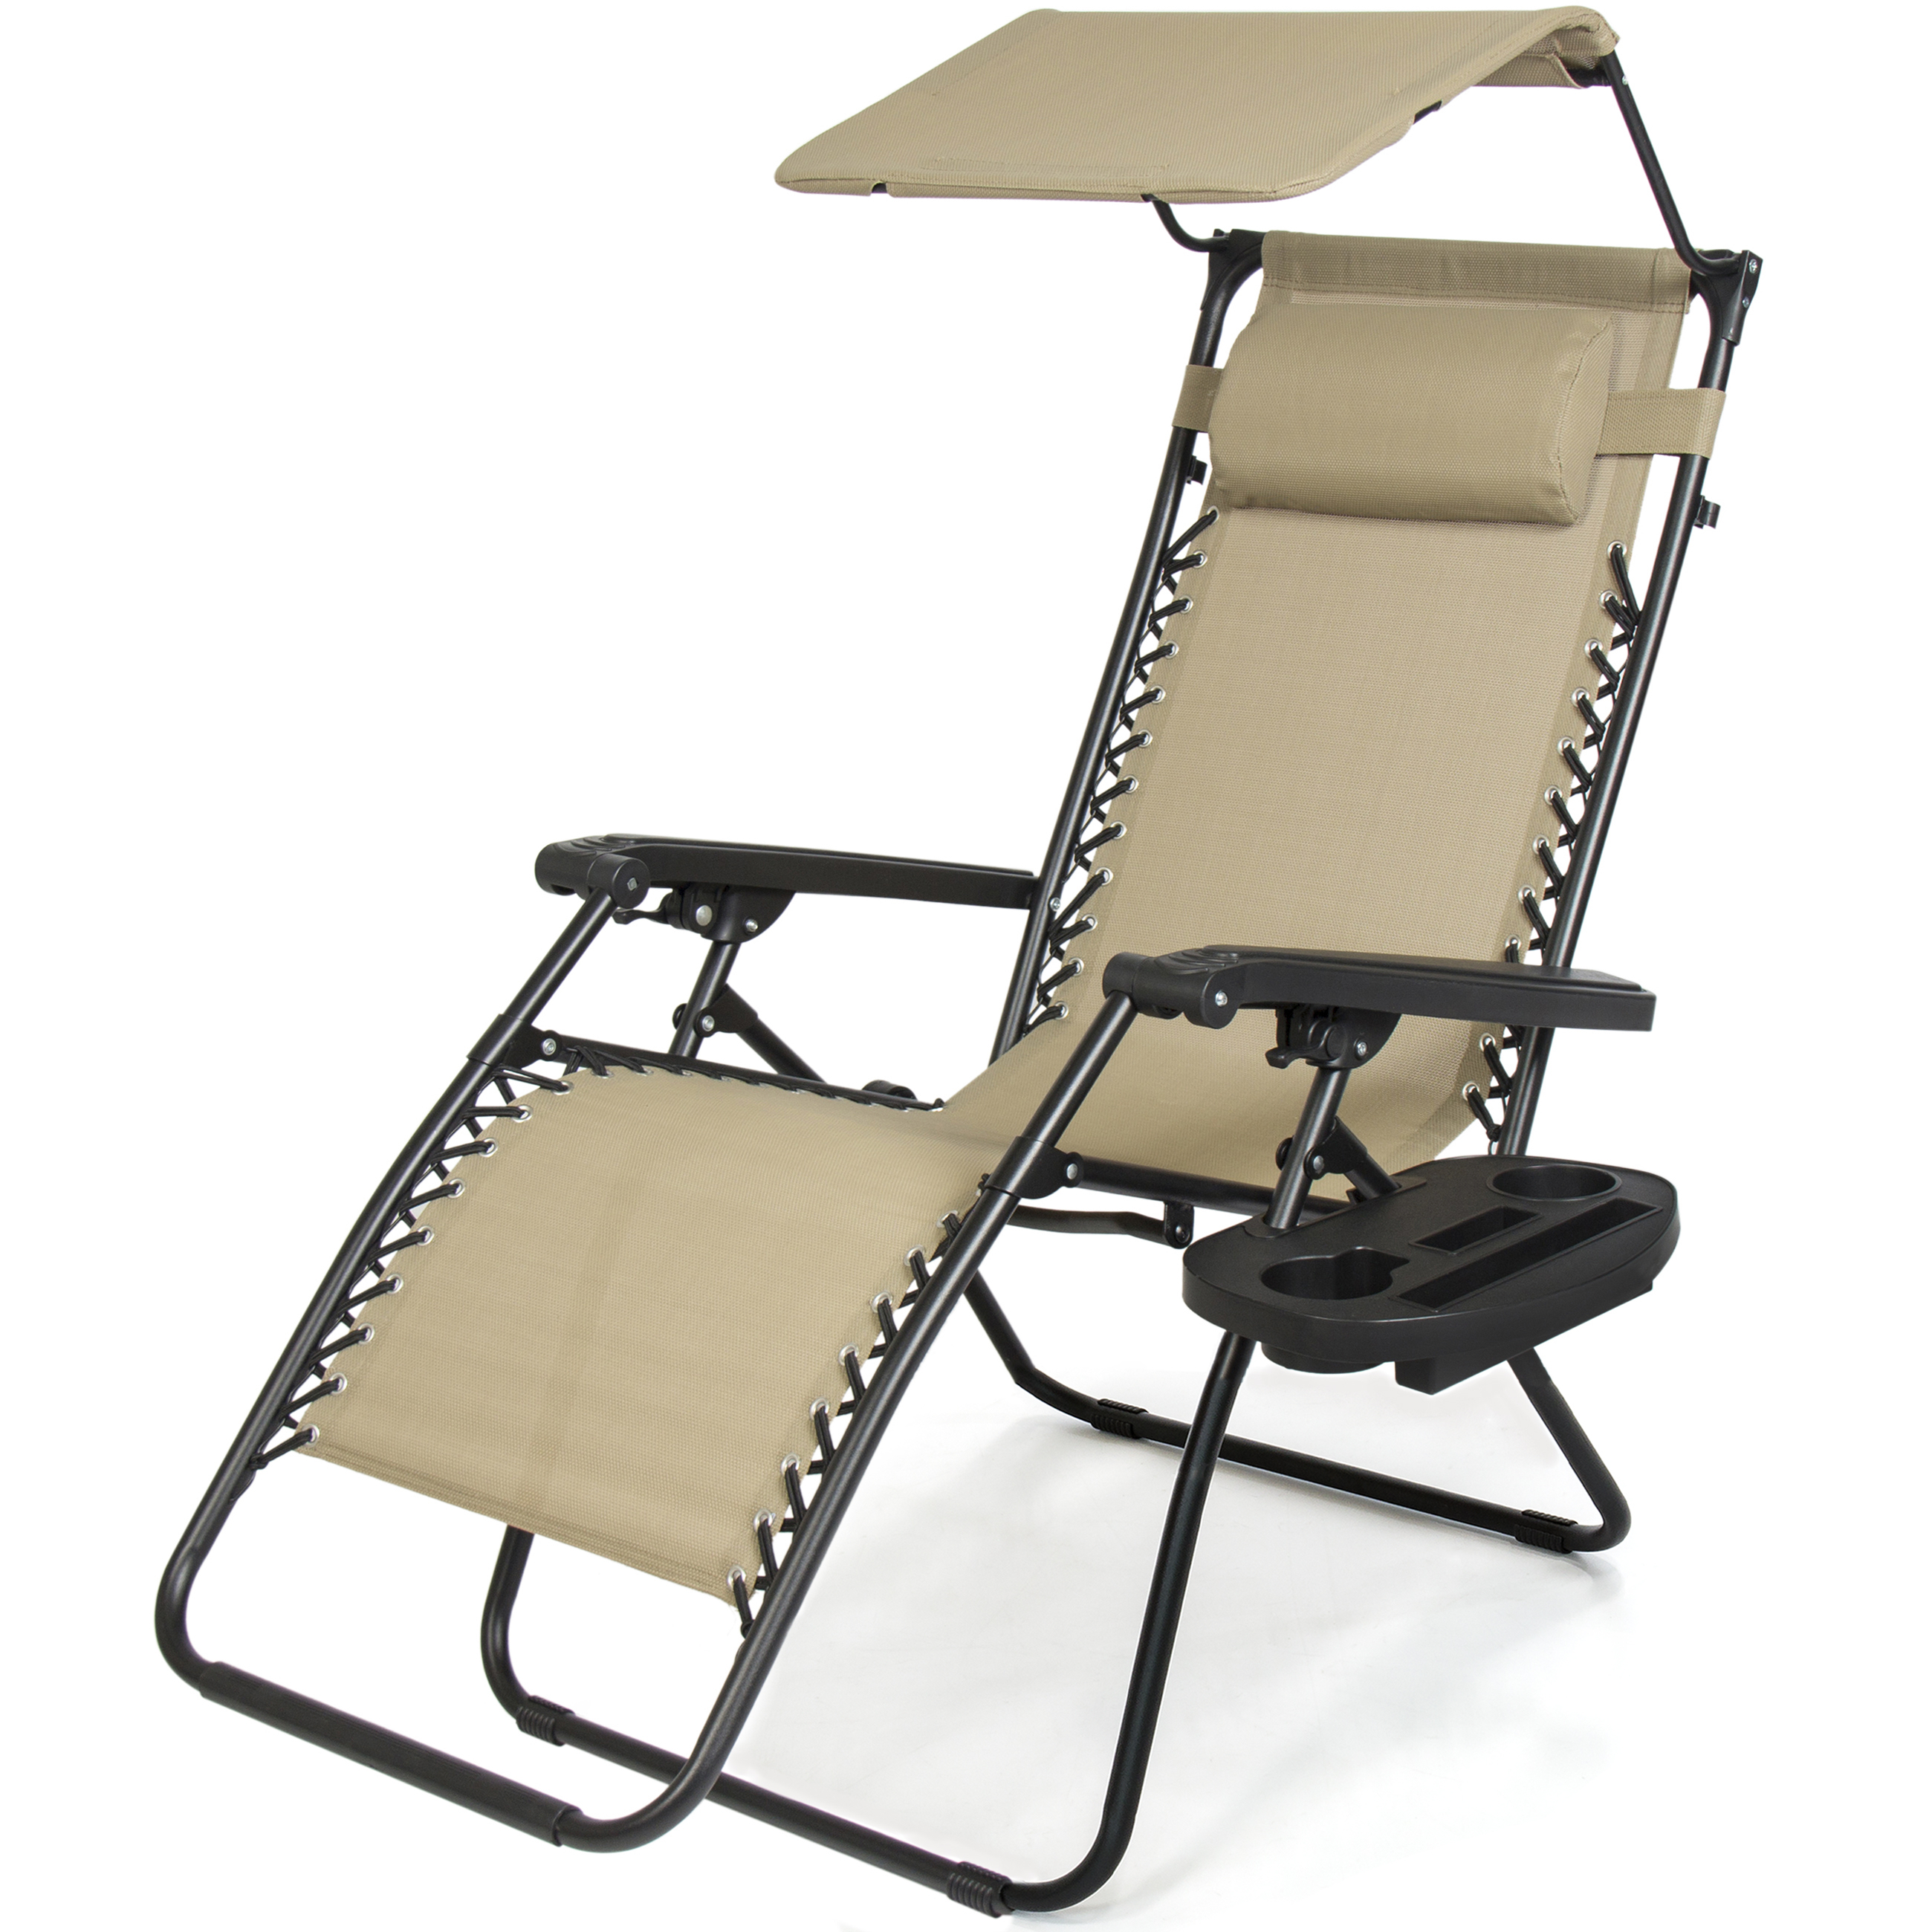 Well Liked Portable Extendable Folding Reclining Chairs Intended For Best Choice Products Folding Steel Mesh Zero Gravity Recliner Lounge Chair W/ Adjustable Canopy Shade And Cup Holder Accessory Tray, Beige – (View 14 of 25)